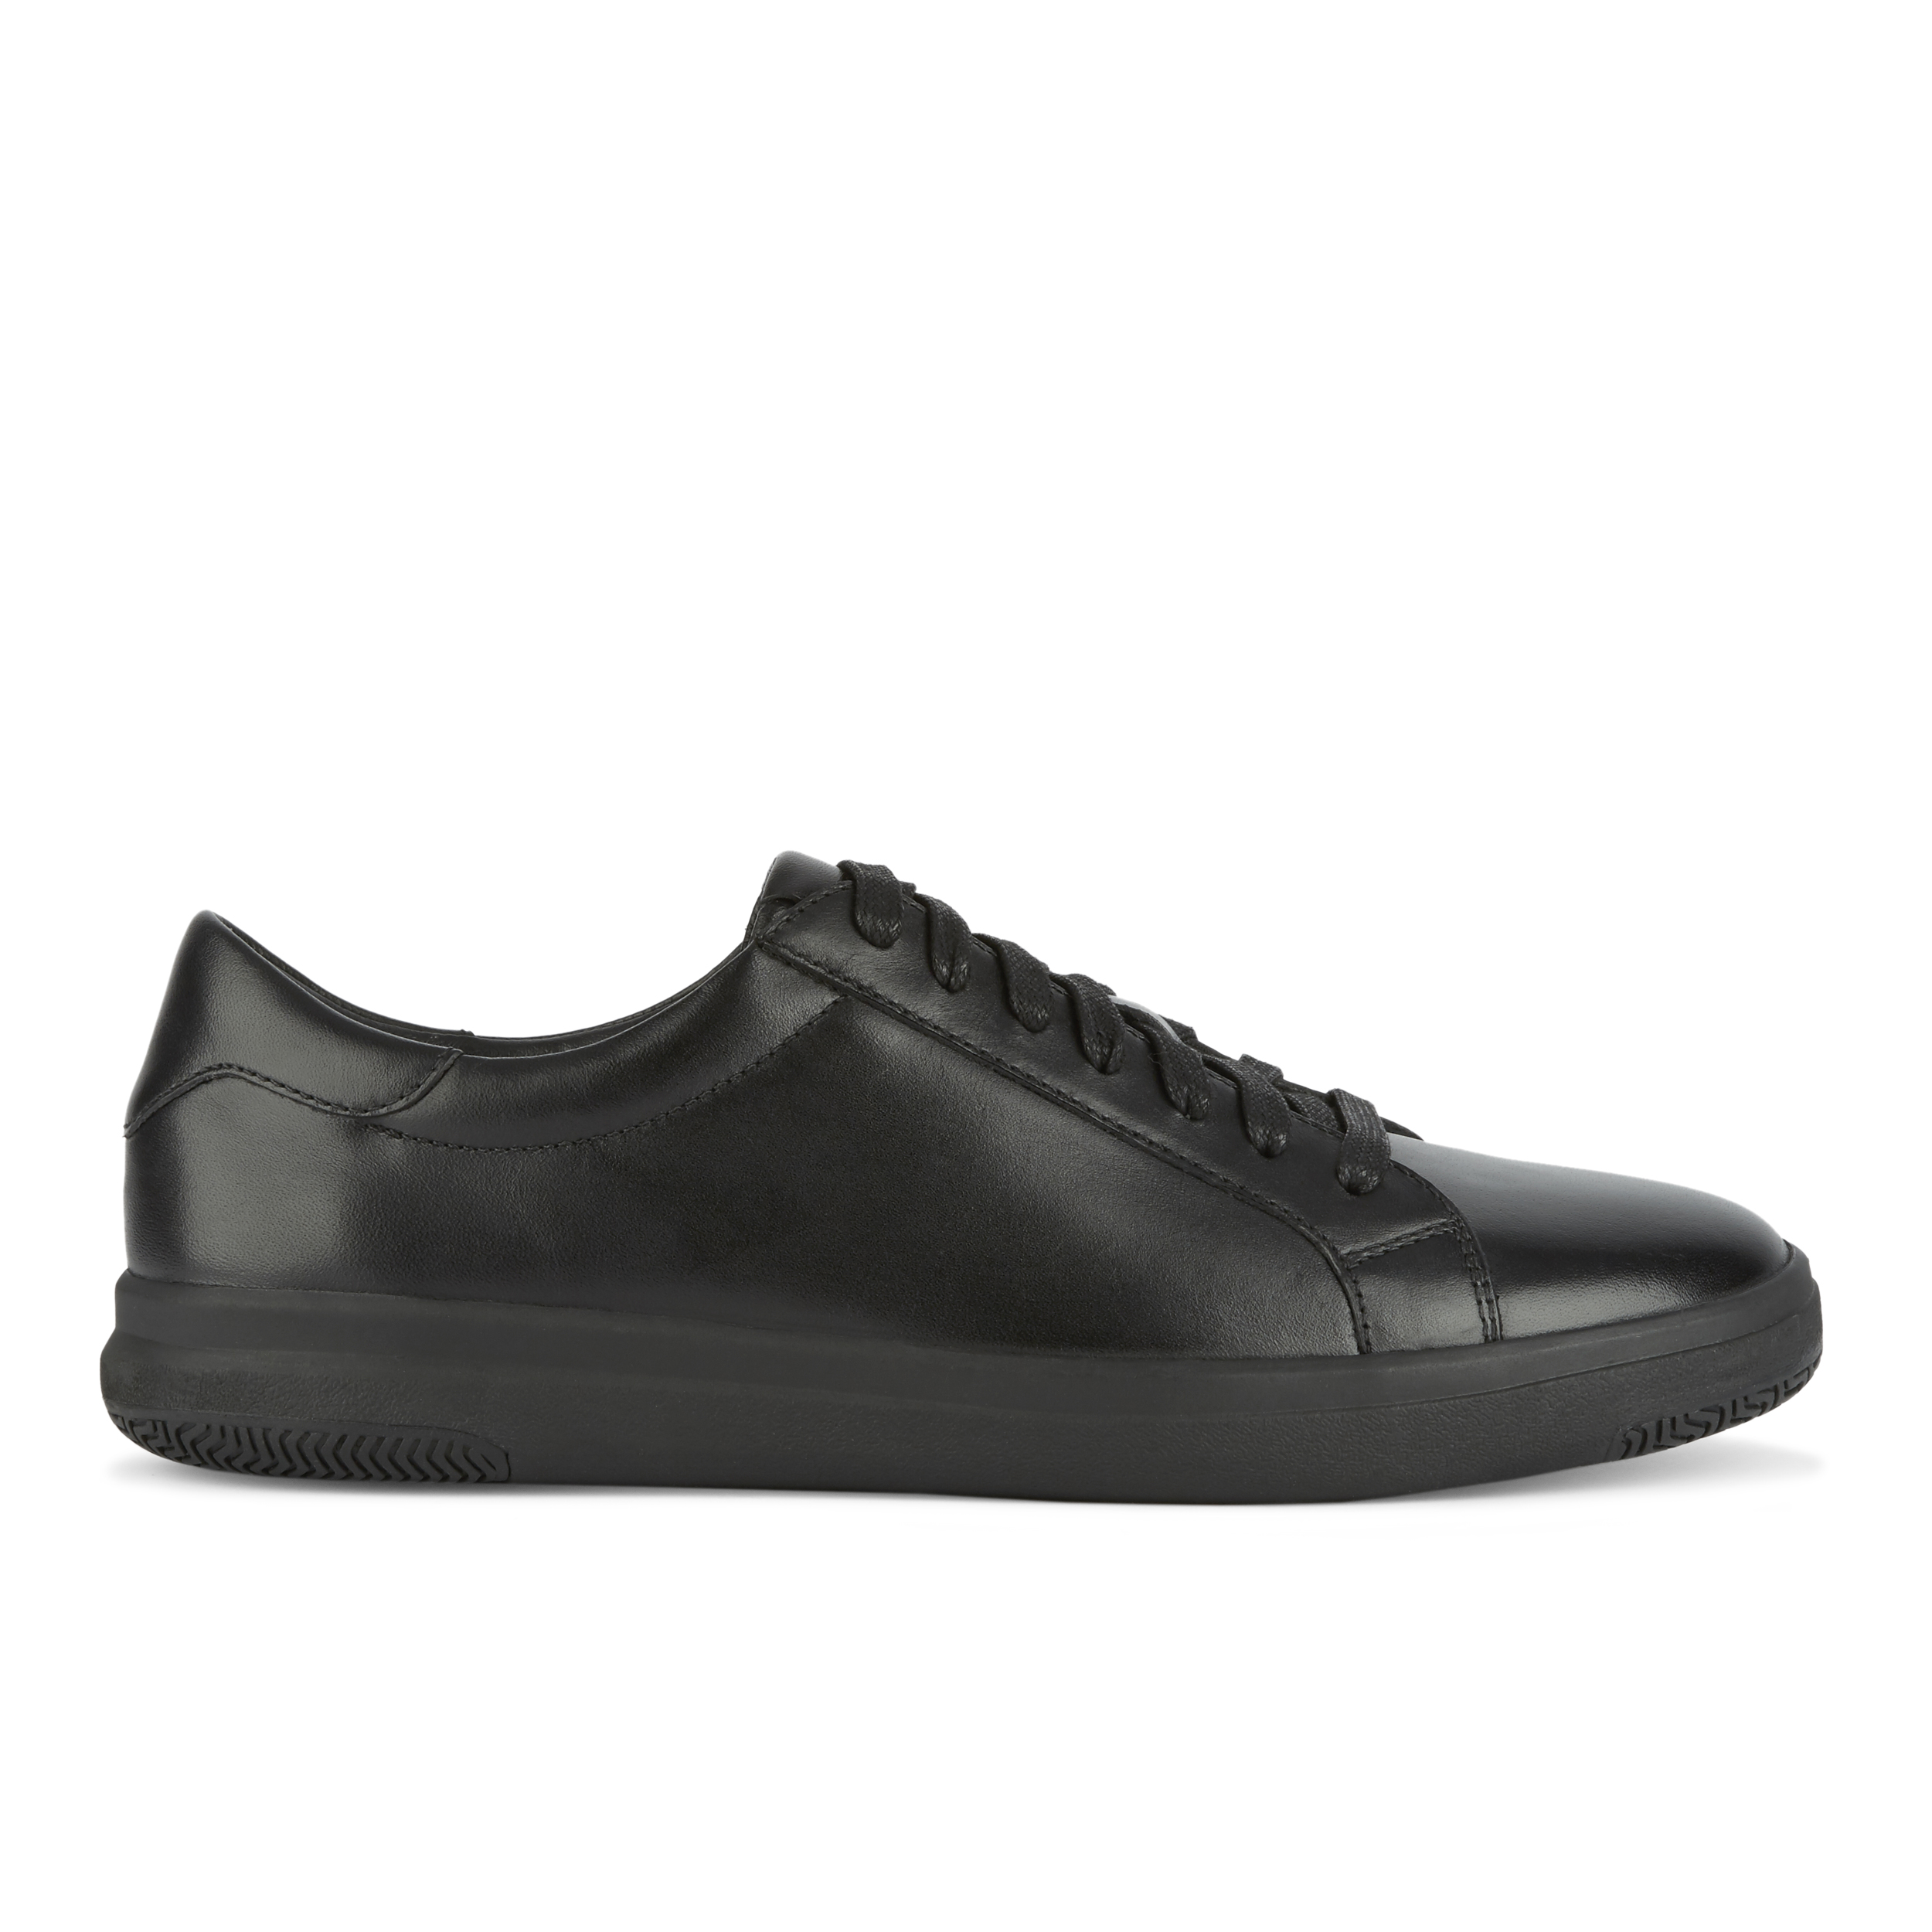 Dockers-Mens-Gilmore-Genuine-Leather-Casual-Fashion-Lace-up-Sneaker-Shoe thumbnail 12